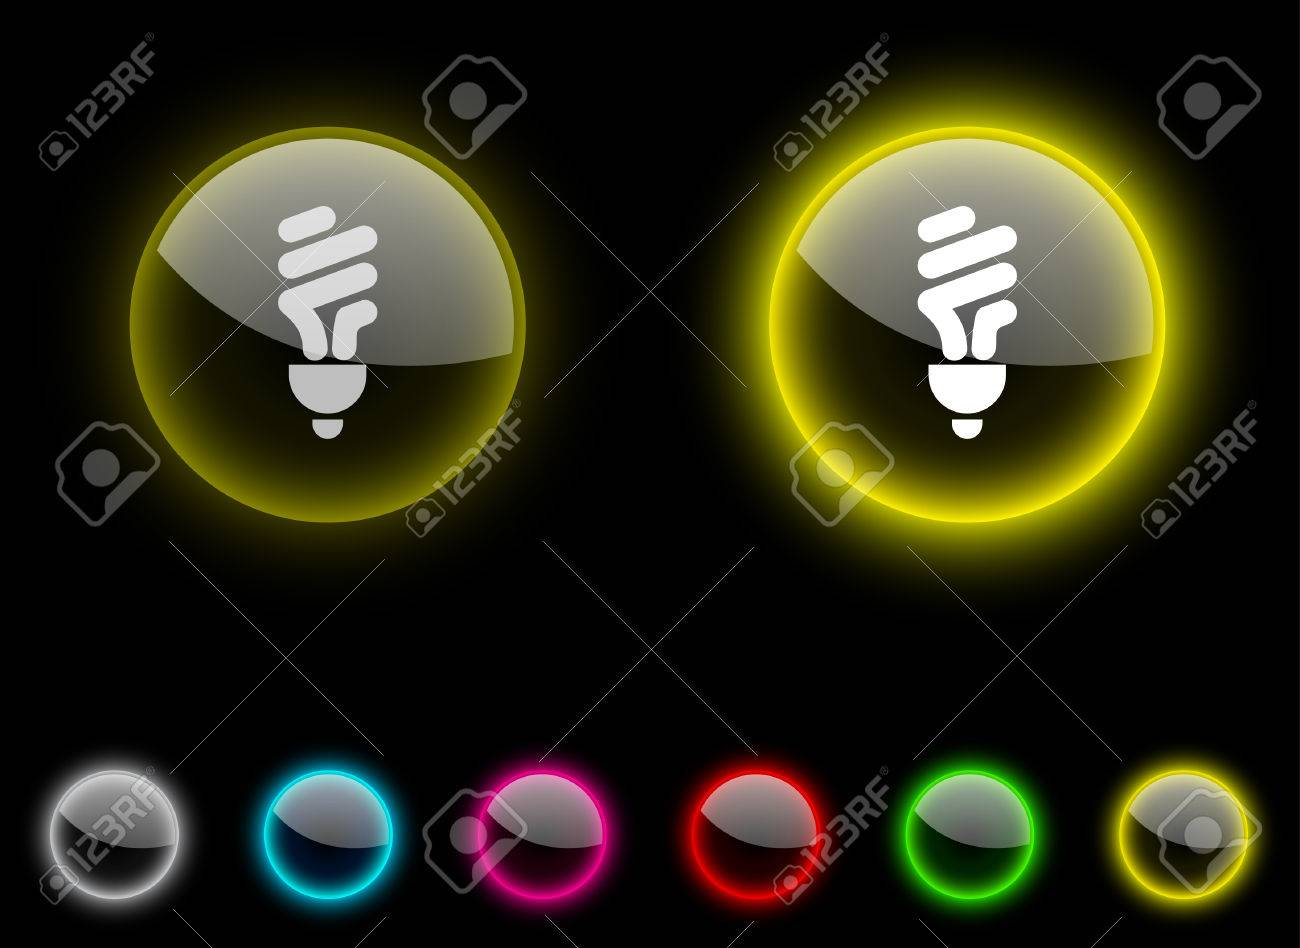 Fluorescent bulb realistic icons. Empty buttons included. Stock Vector - 6684682